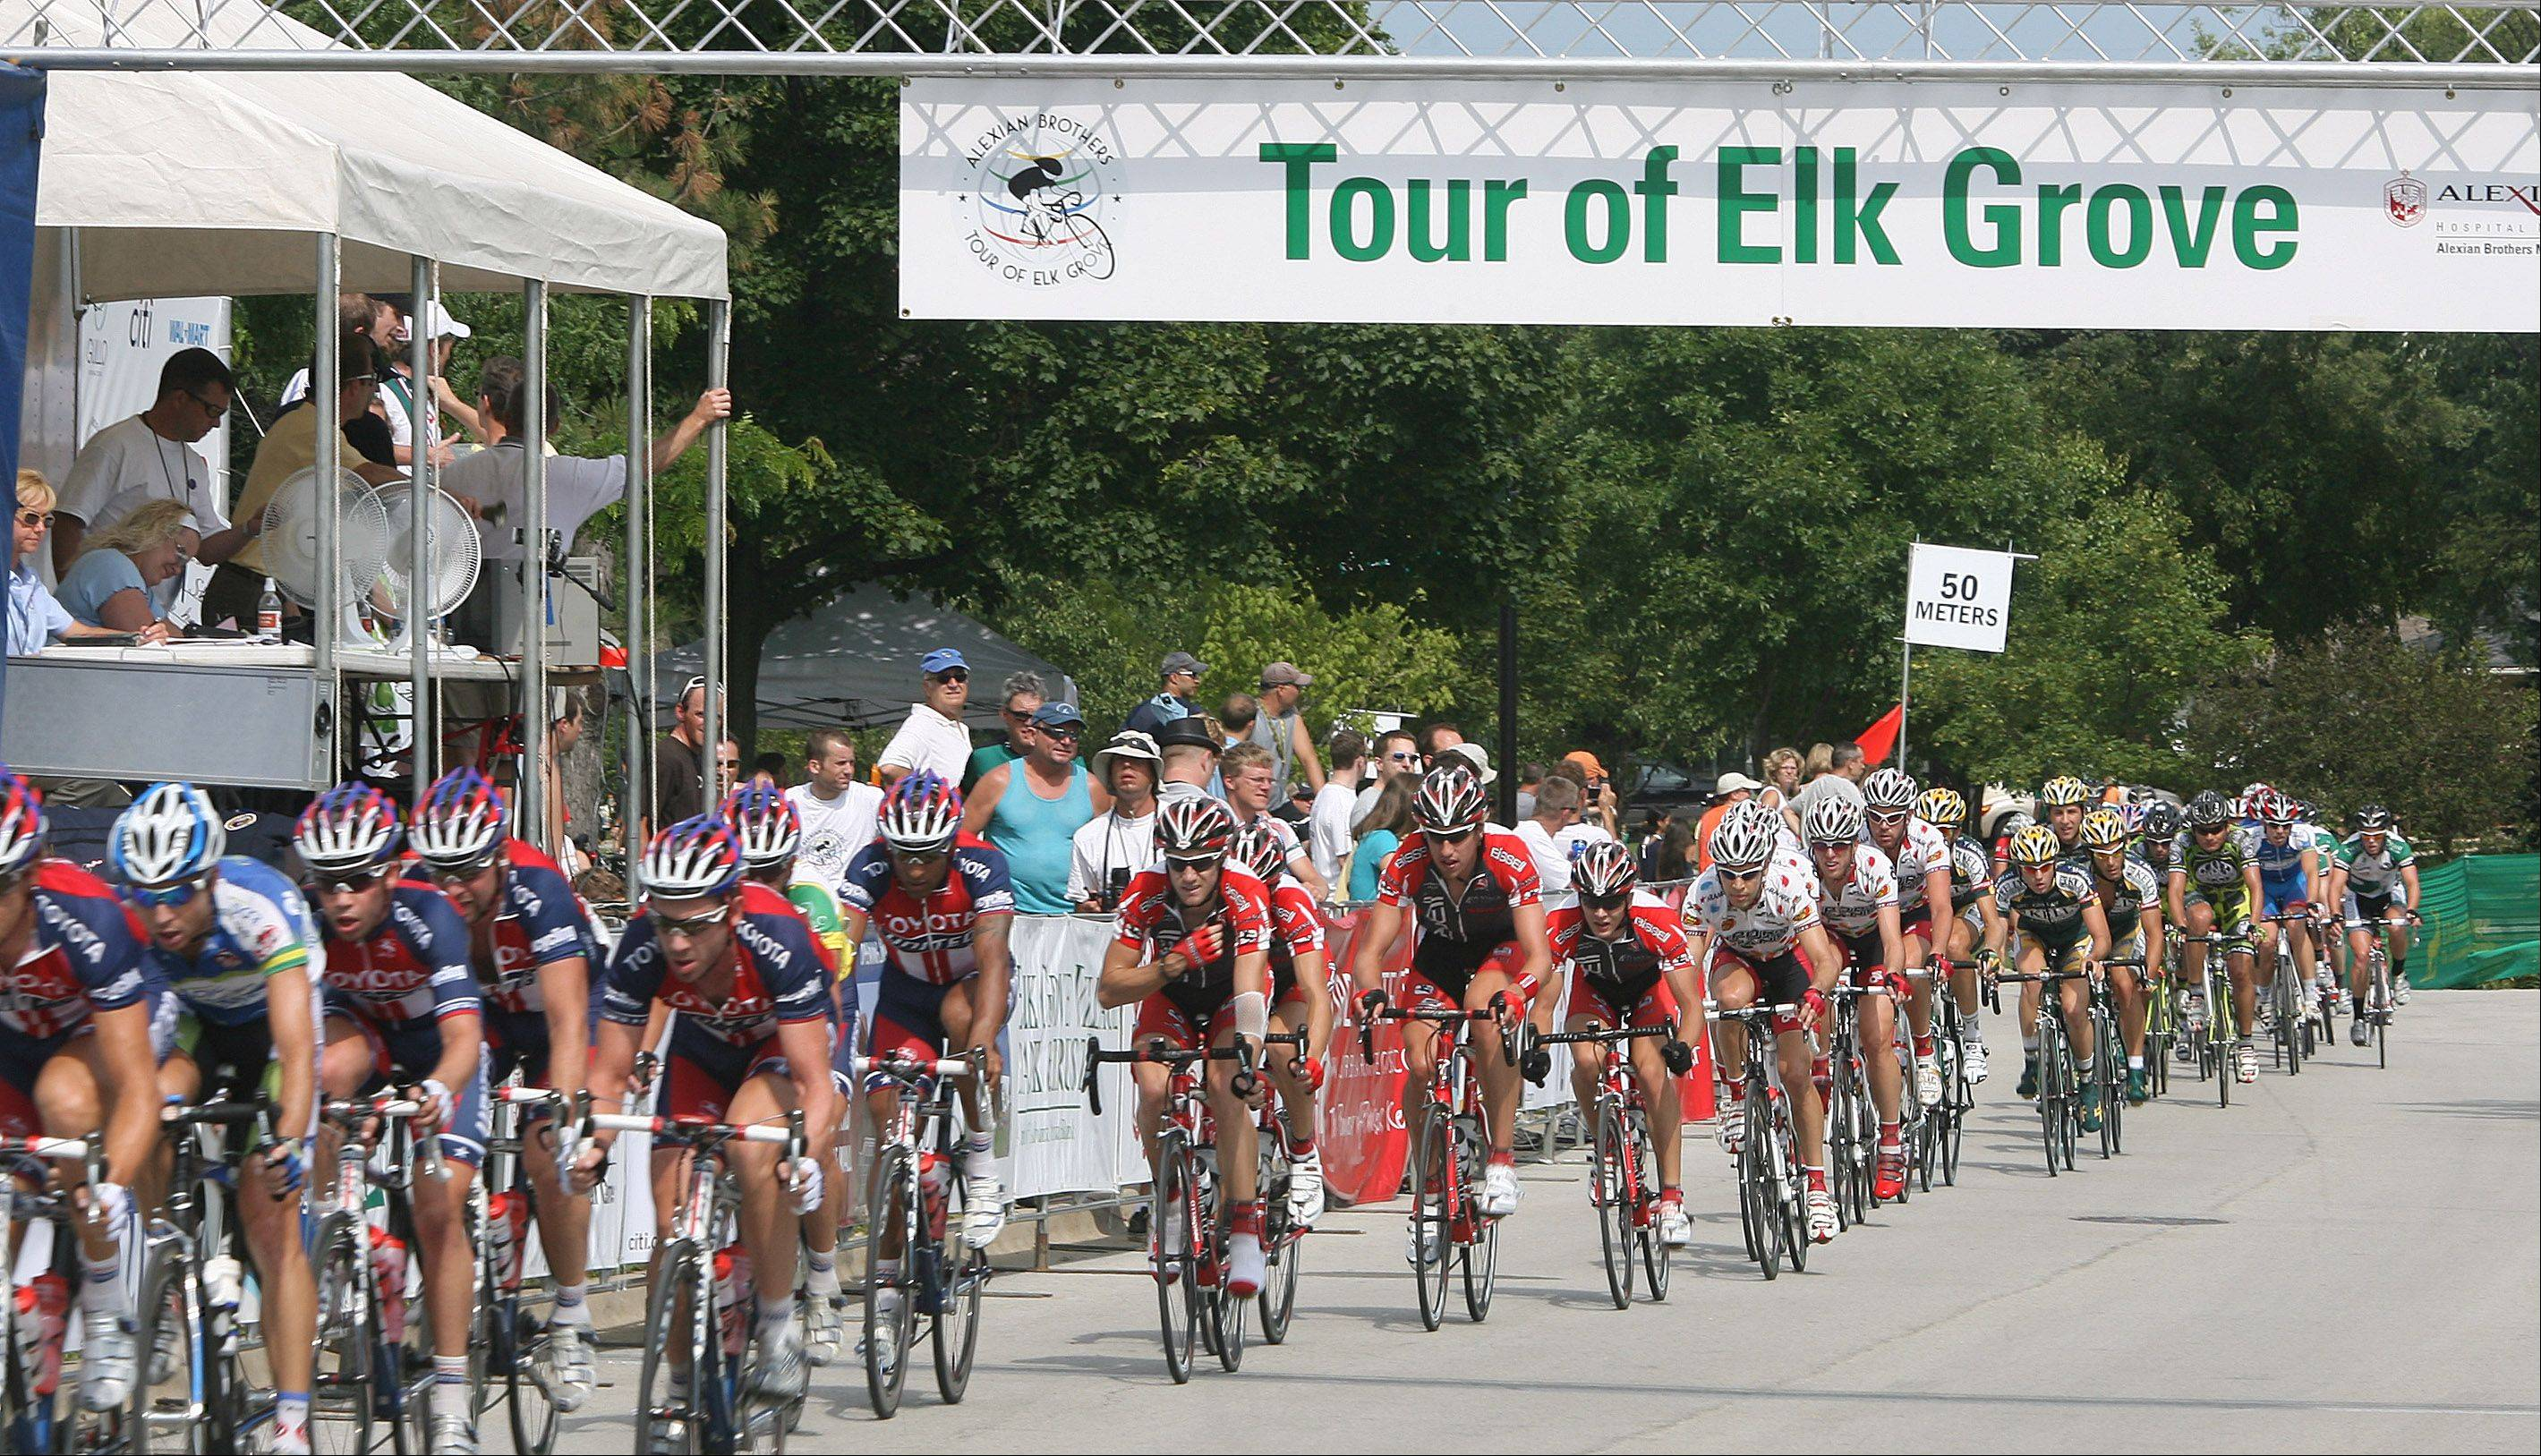 Professional riders race through the streets during Stage 3 of the Tour of Elk Grove.